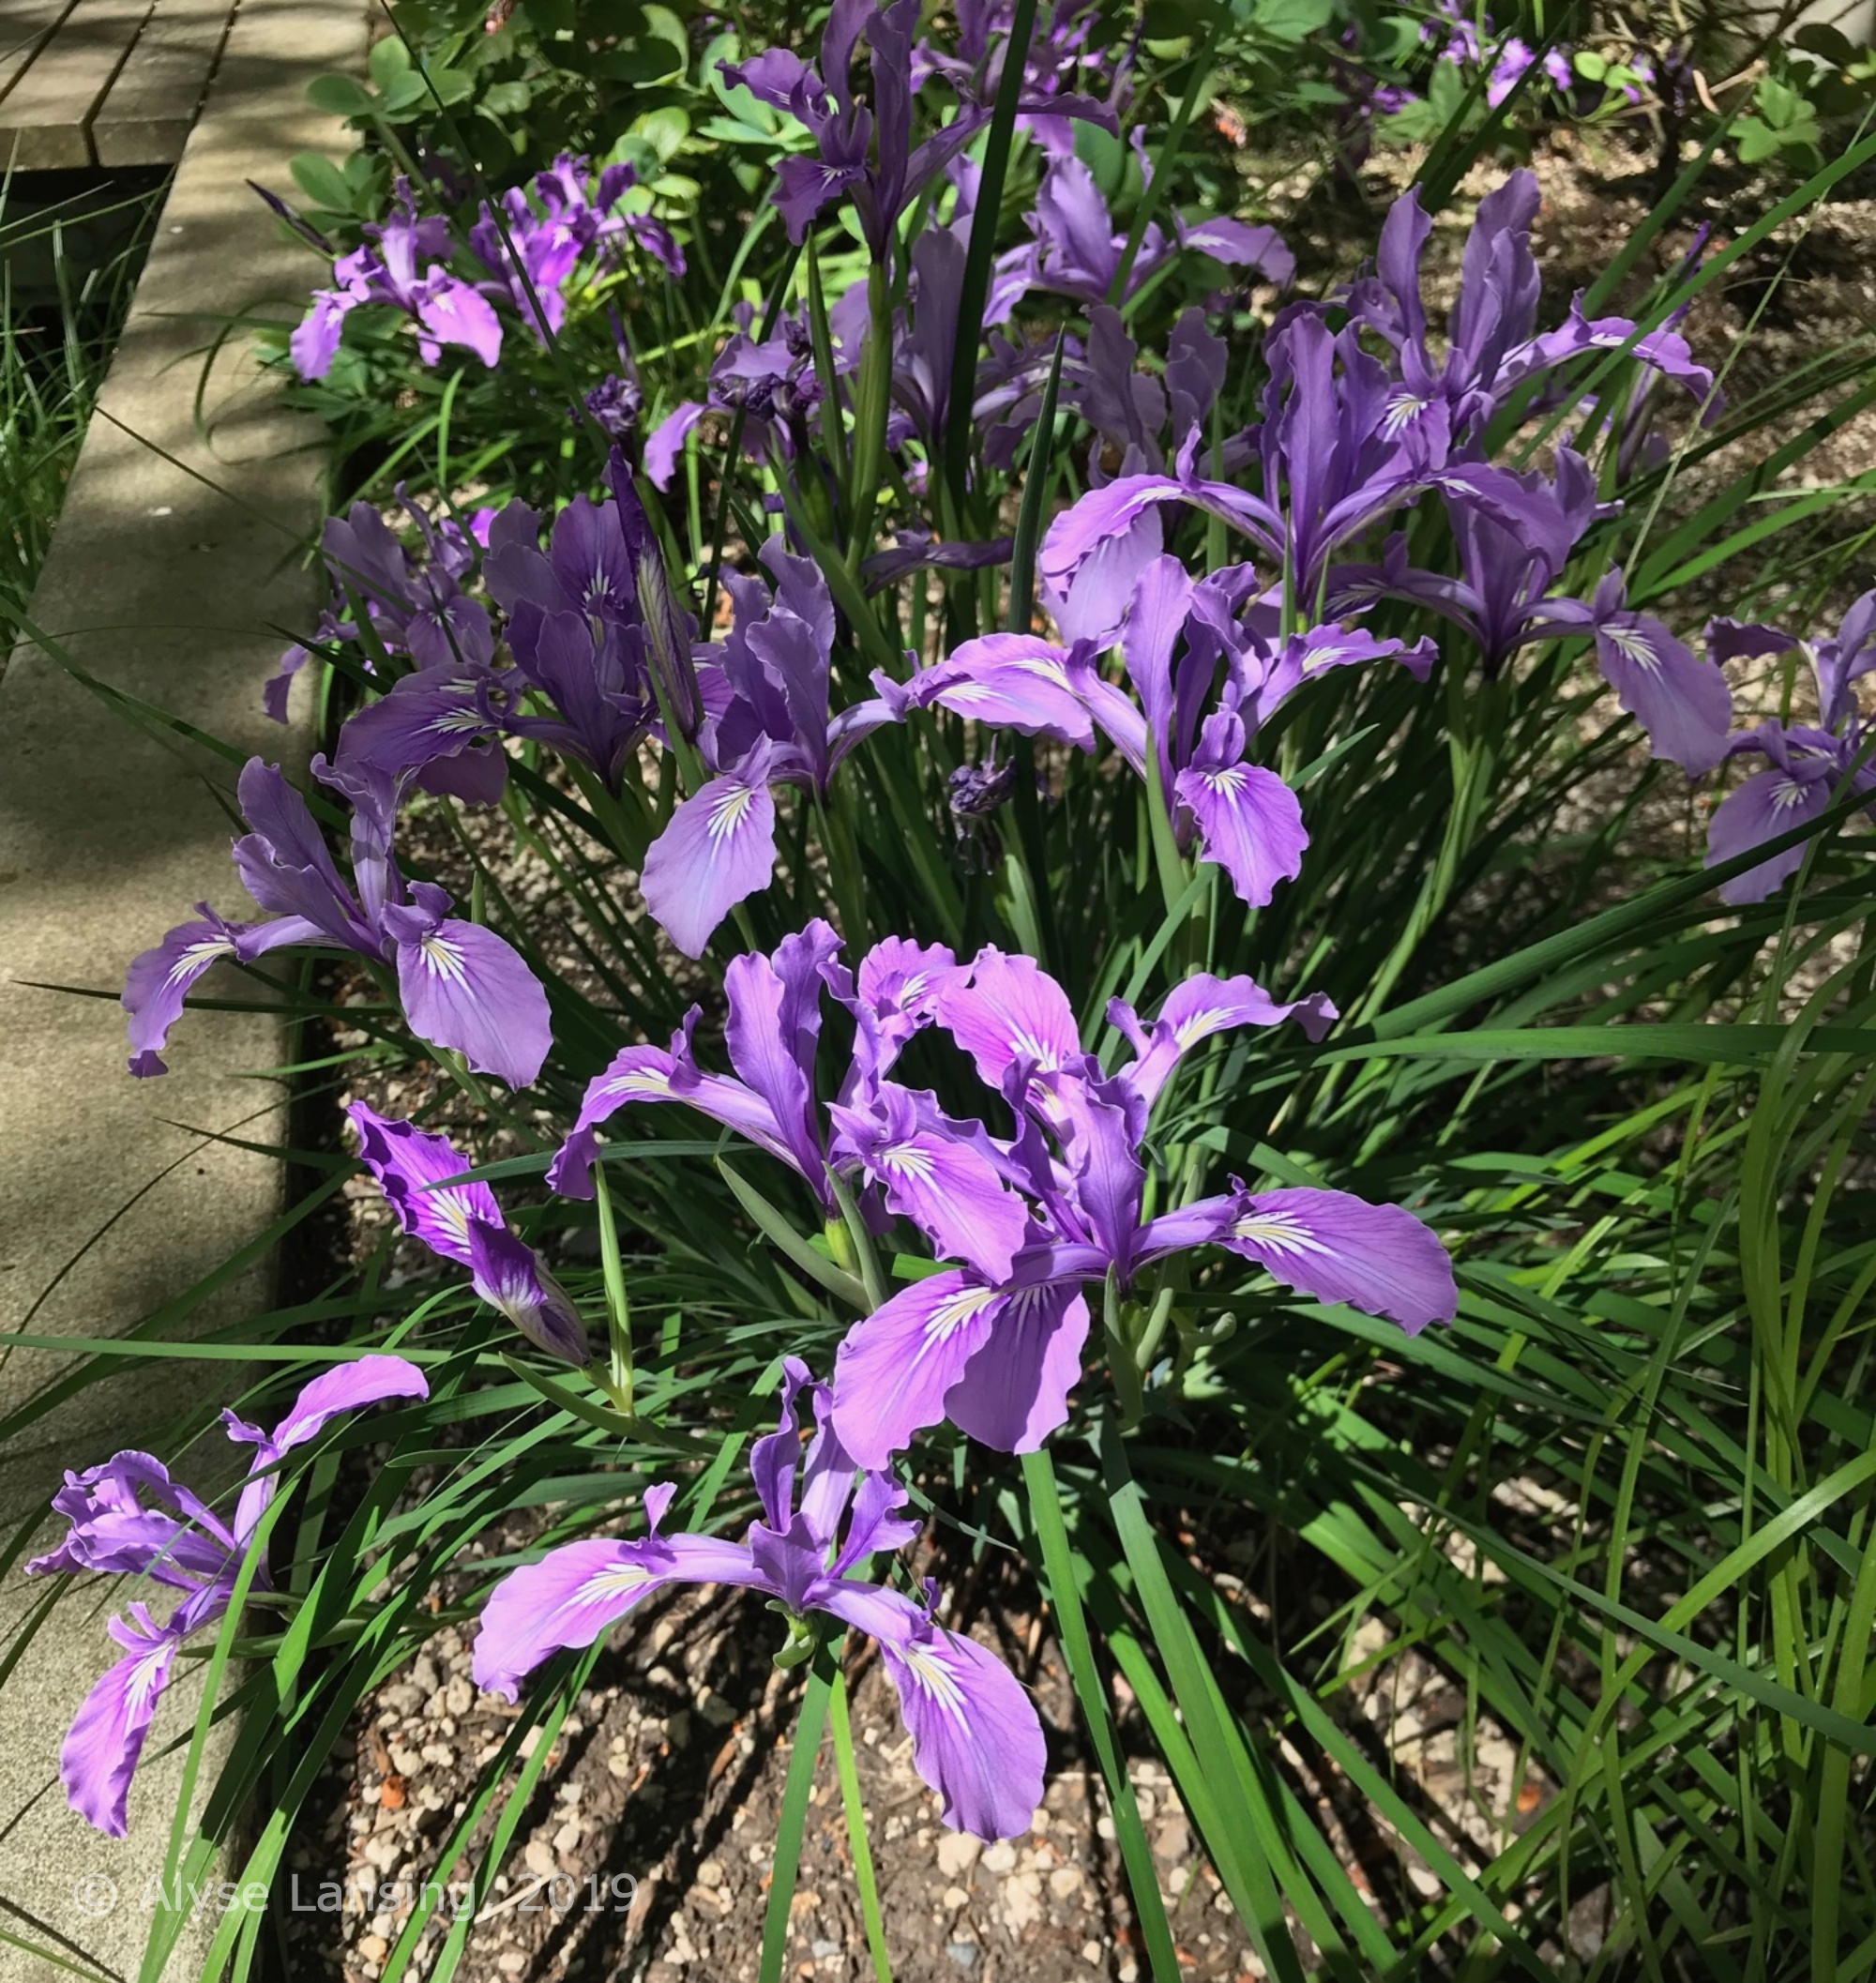 Native Iris tenax in bloom at the front doors of the city homes.